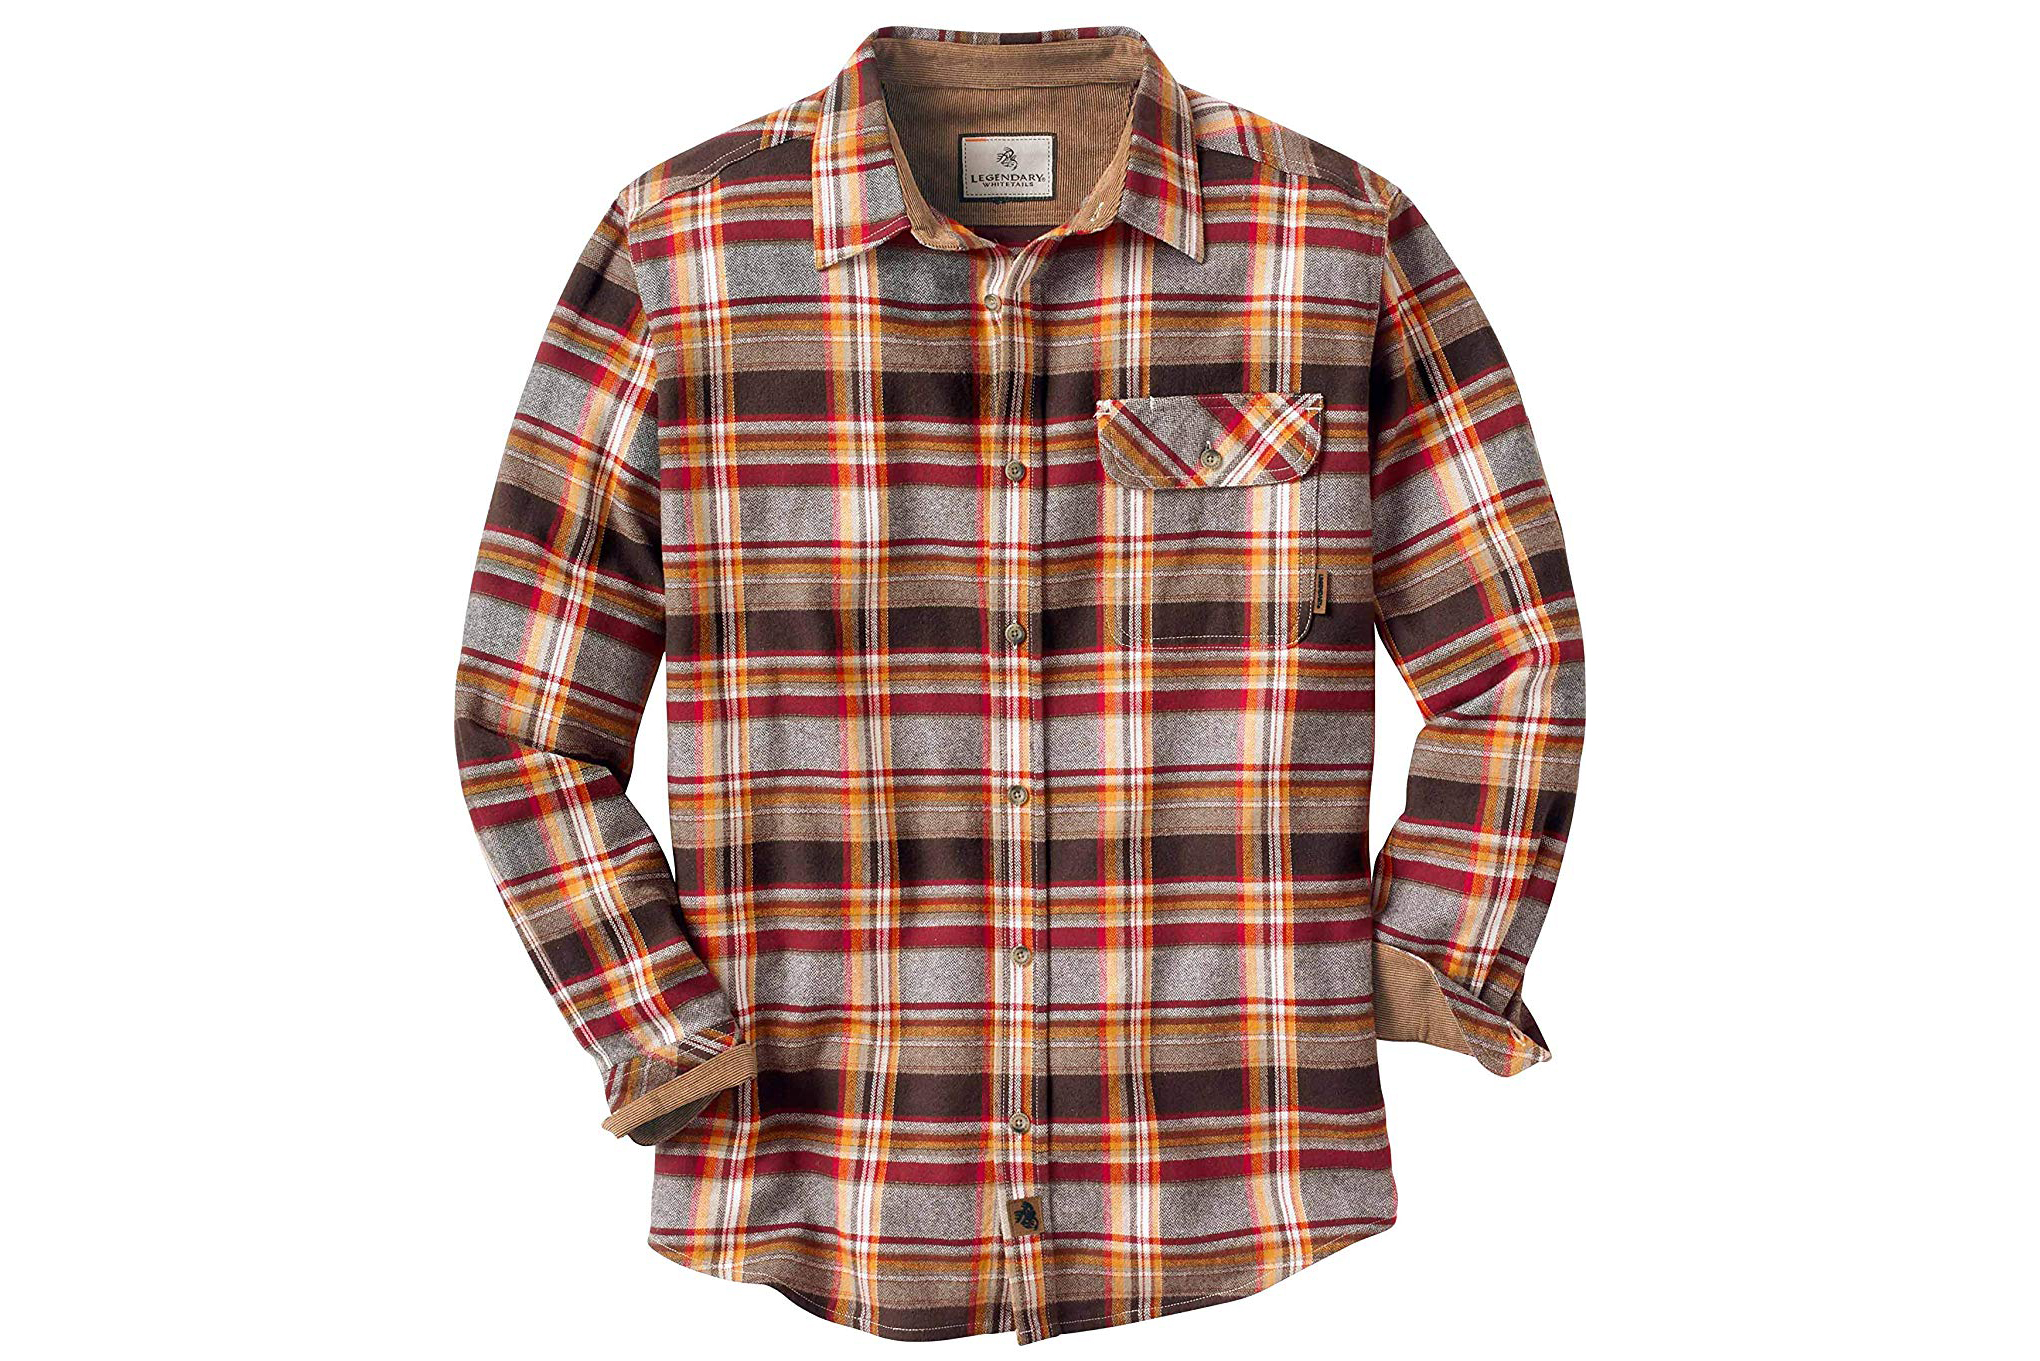 7753411756b1 Affordable Flannel – Legendary Whitetails Buck Camp Flannel Shirt   30-40